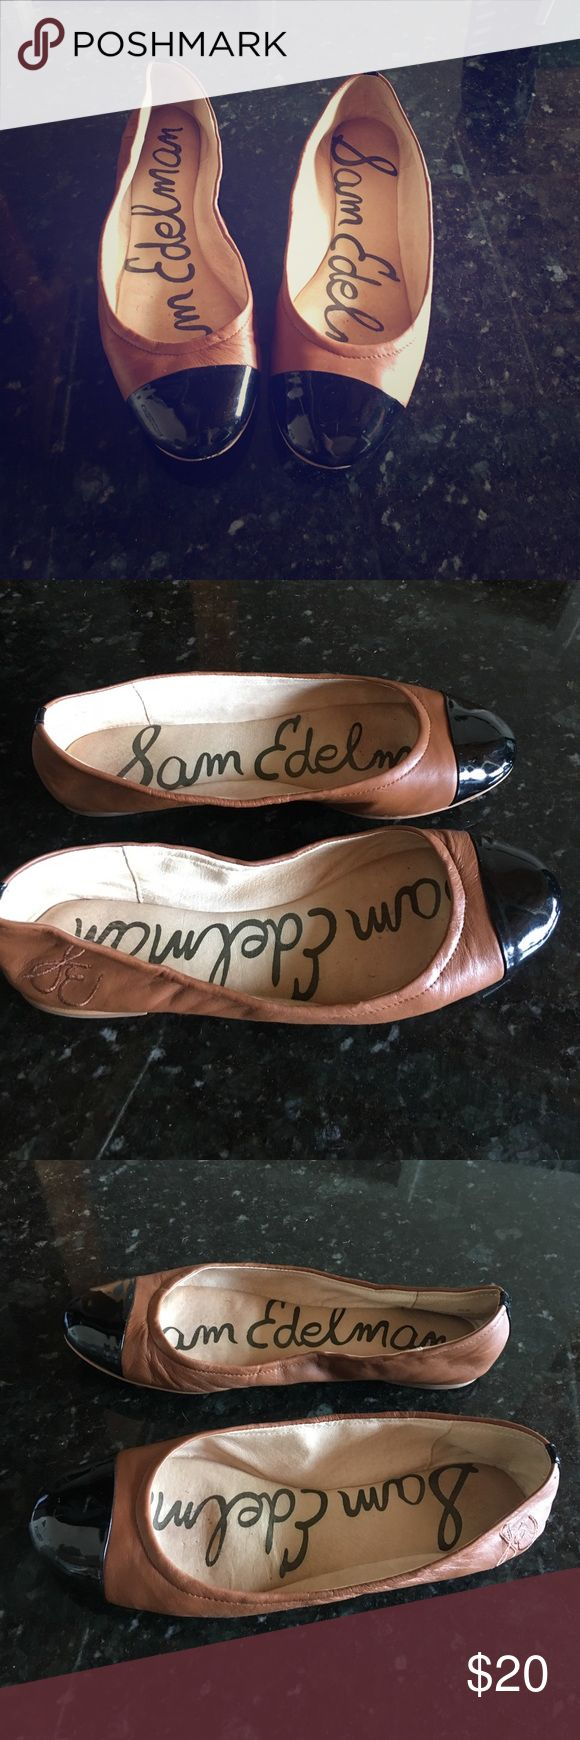 Sam Edelman 'Baxton 2' Black Cap Toe Ballet Flats Sam Edelman 'Baxton 2' Black Cap Toe Brown Ballet Flats  Like new! An elasticized topline perfects the fit of a classic cap-toe flat. Leather upper/synthetic lining and sole.   Size 9.5   From a smoke free home. Sam Edelman Shoes Flats & Loafers